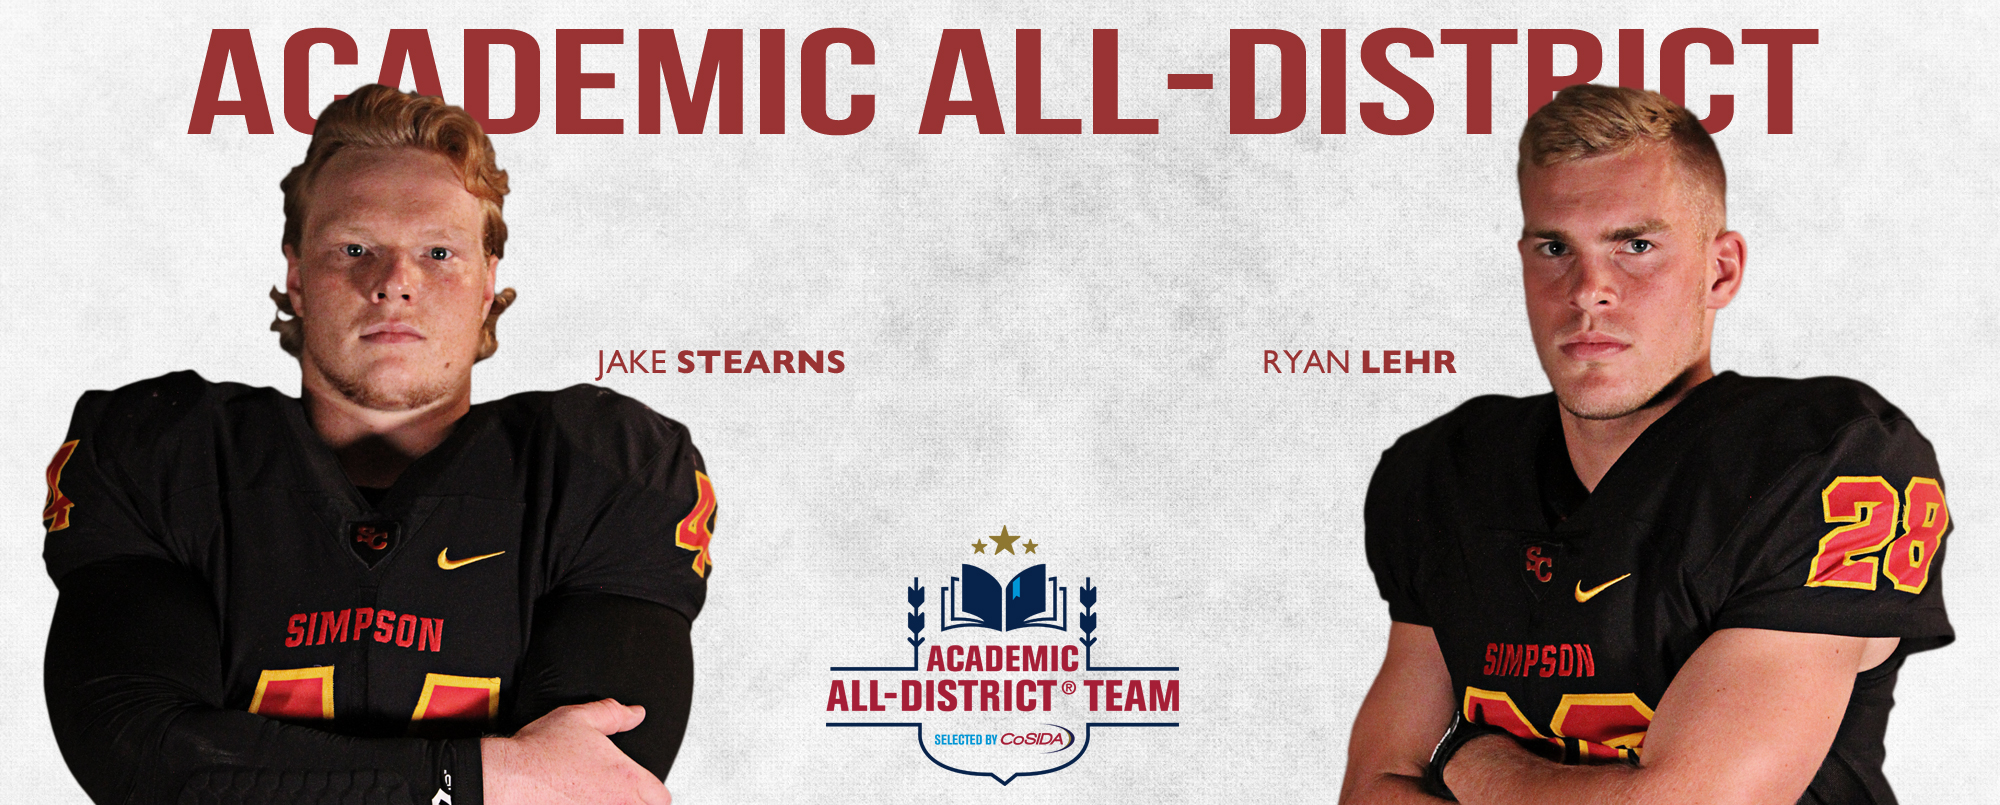 Jake Stearns and Ryan Lehr earned a spot on the 2017 CoSIDA Academic All-District 8 First Team.